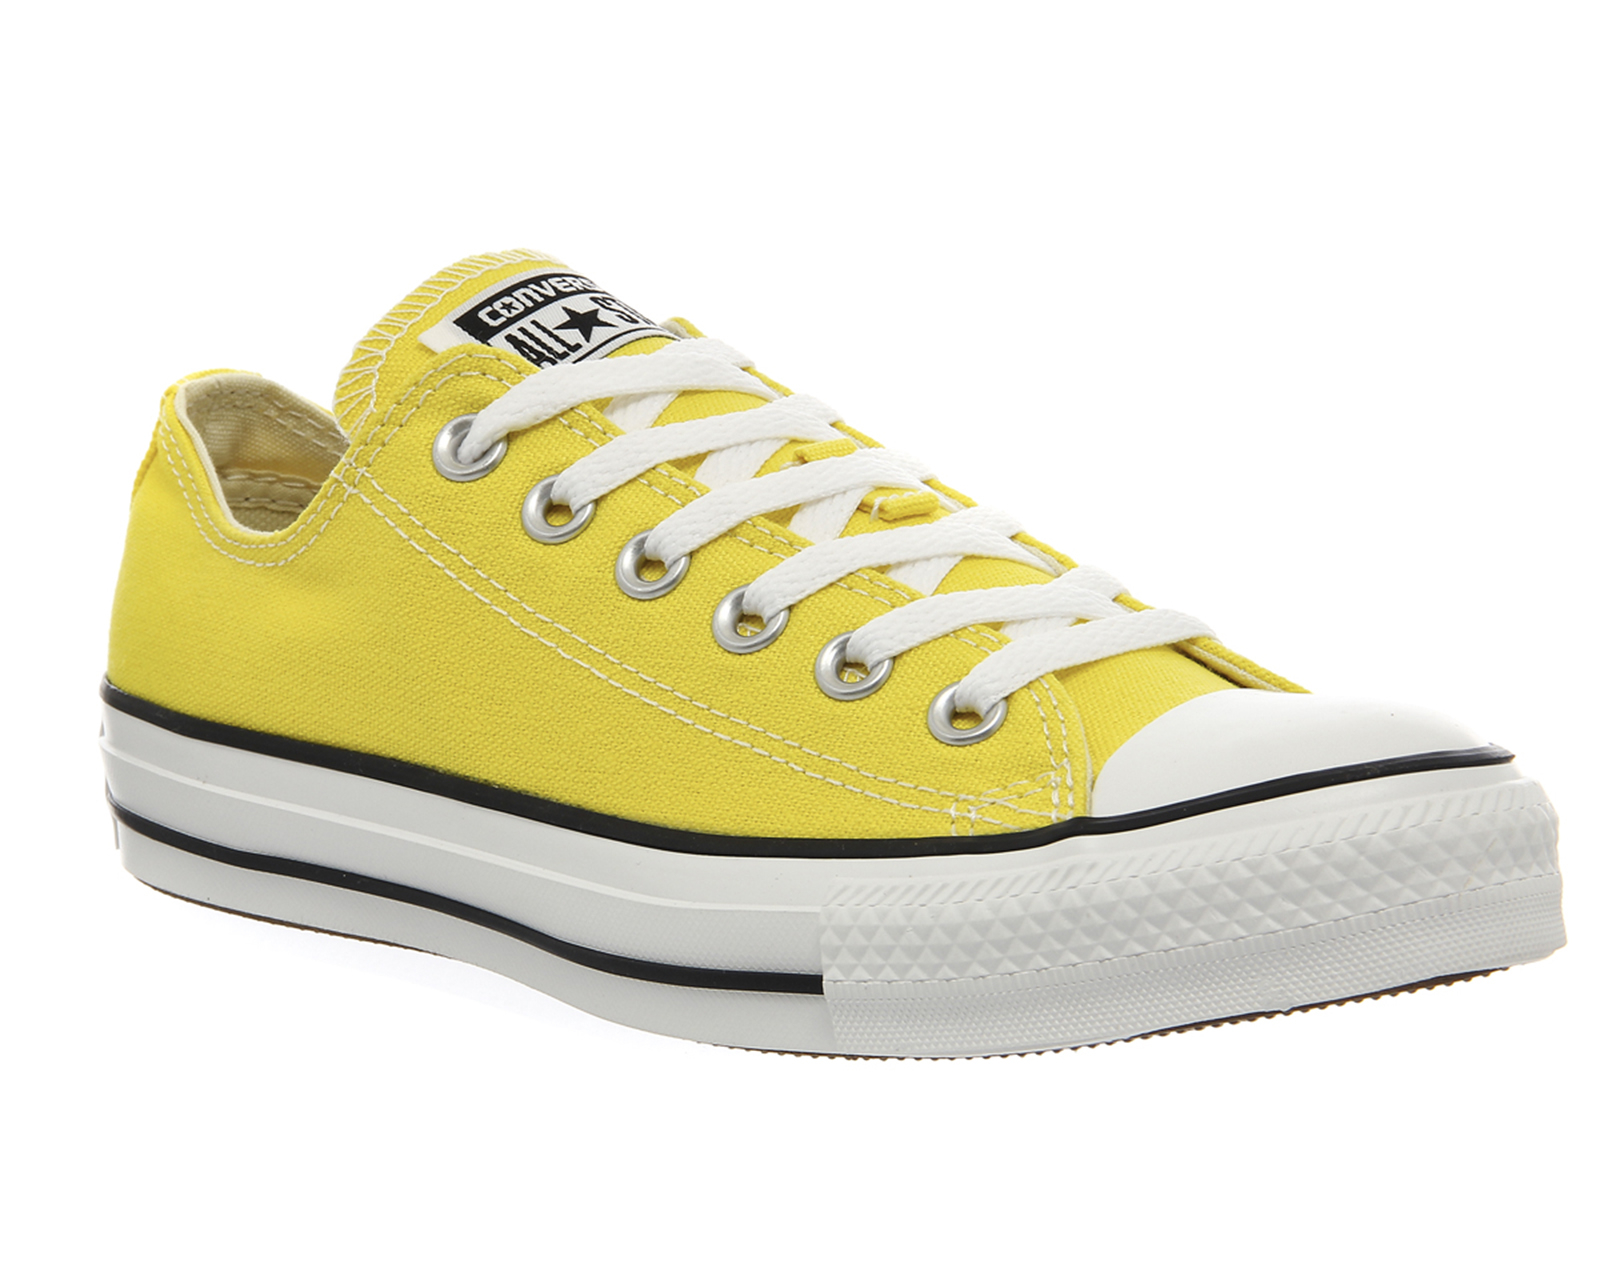 converse all star low in yellow citrus lyst. Black Bedroom Furniture Sets. Home Design Ideas